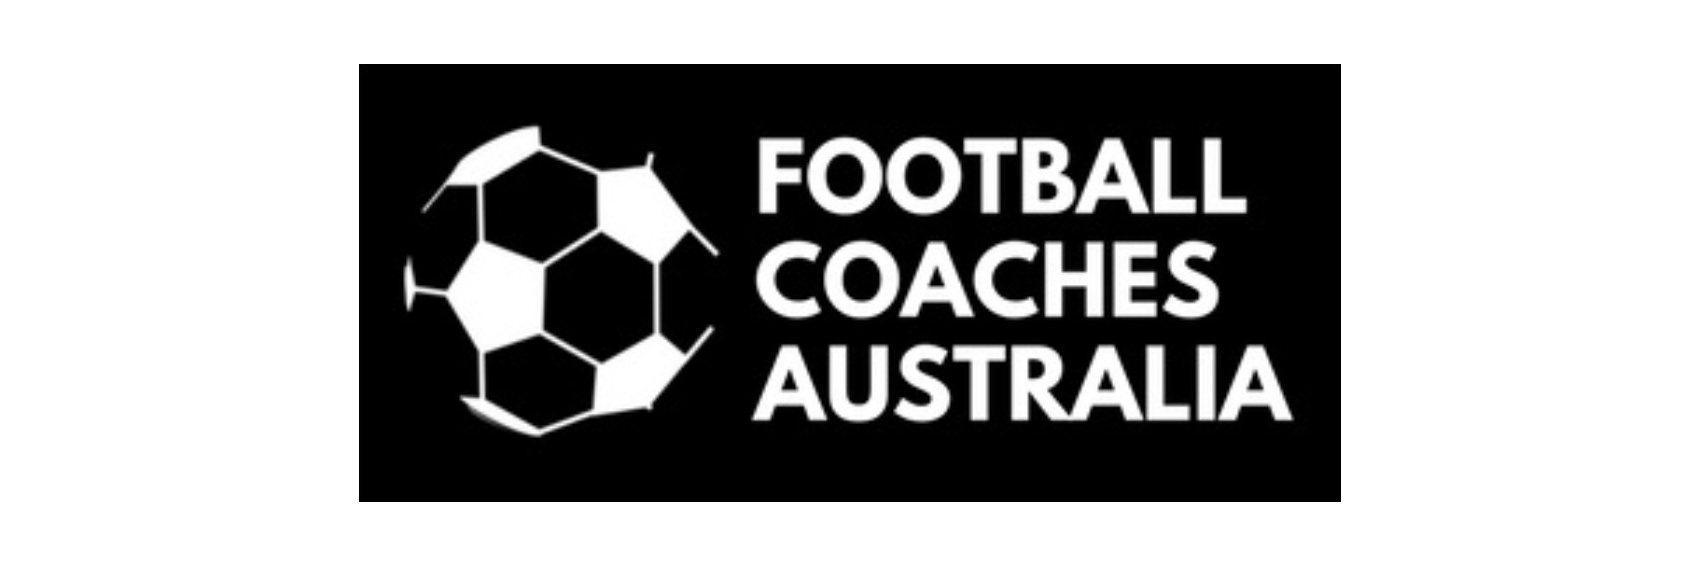 Football Coaches Australia News Summer Issue 2 2018-19